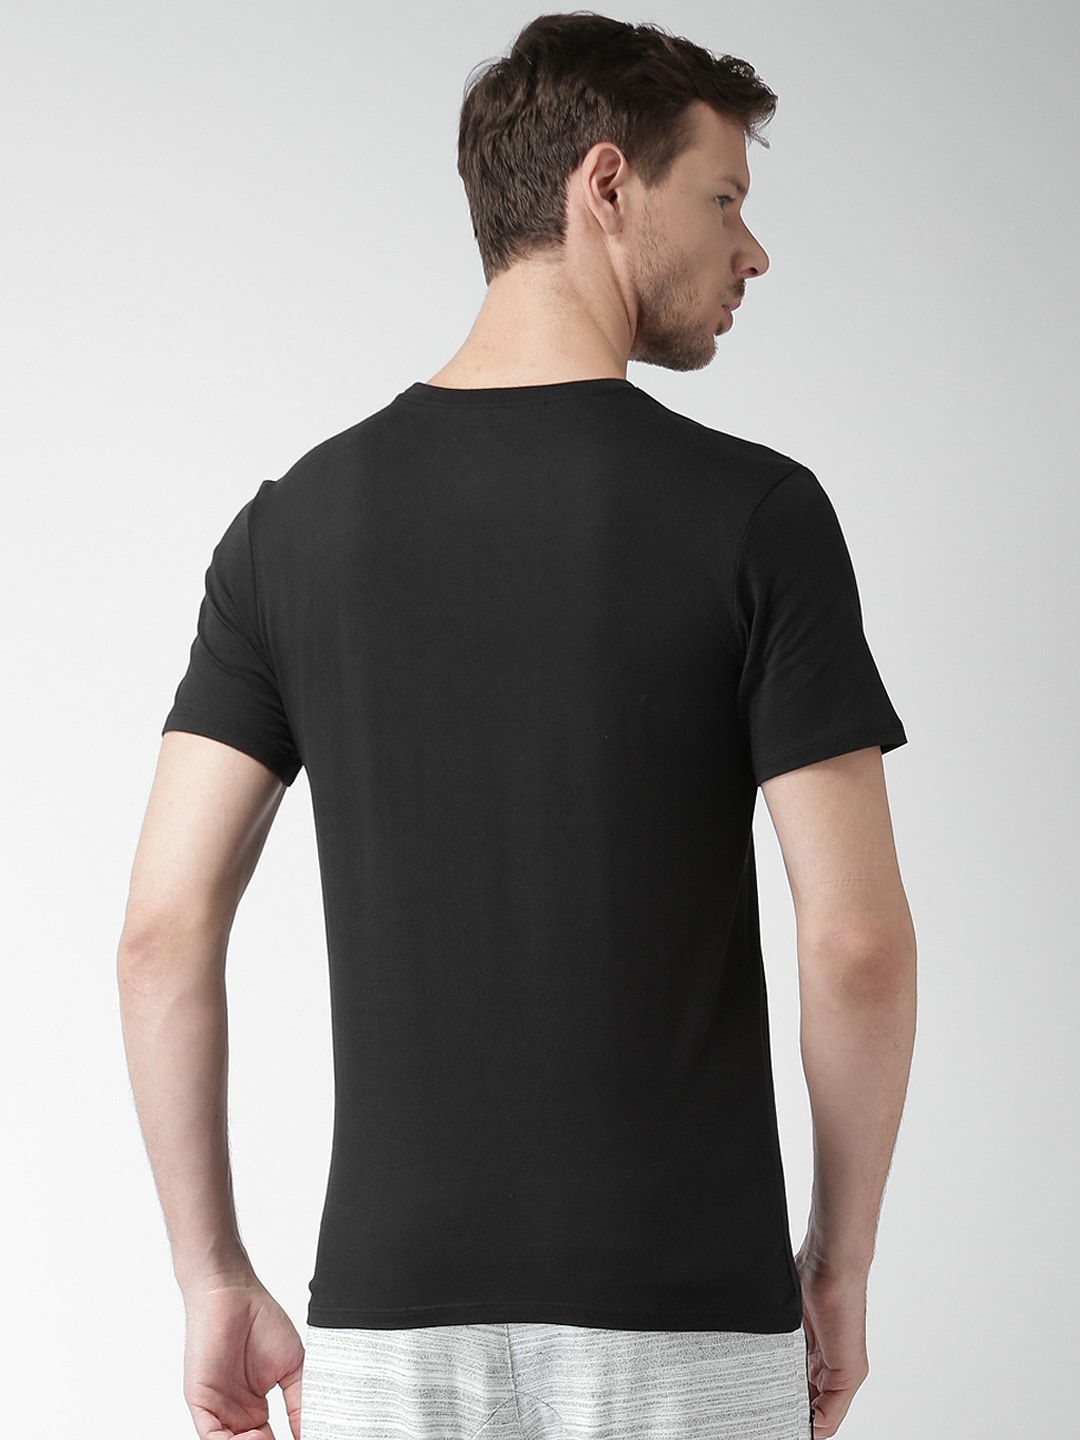 Black t shirt man - Black T Shirt Man 28